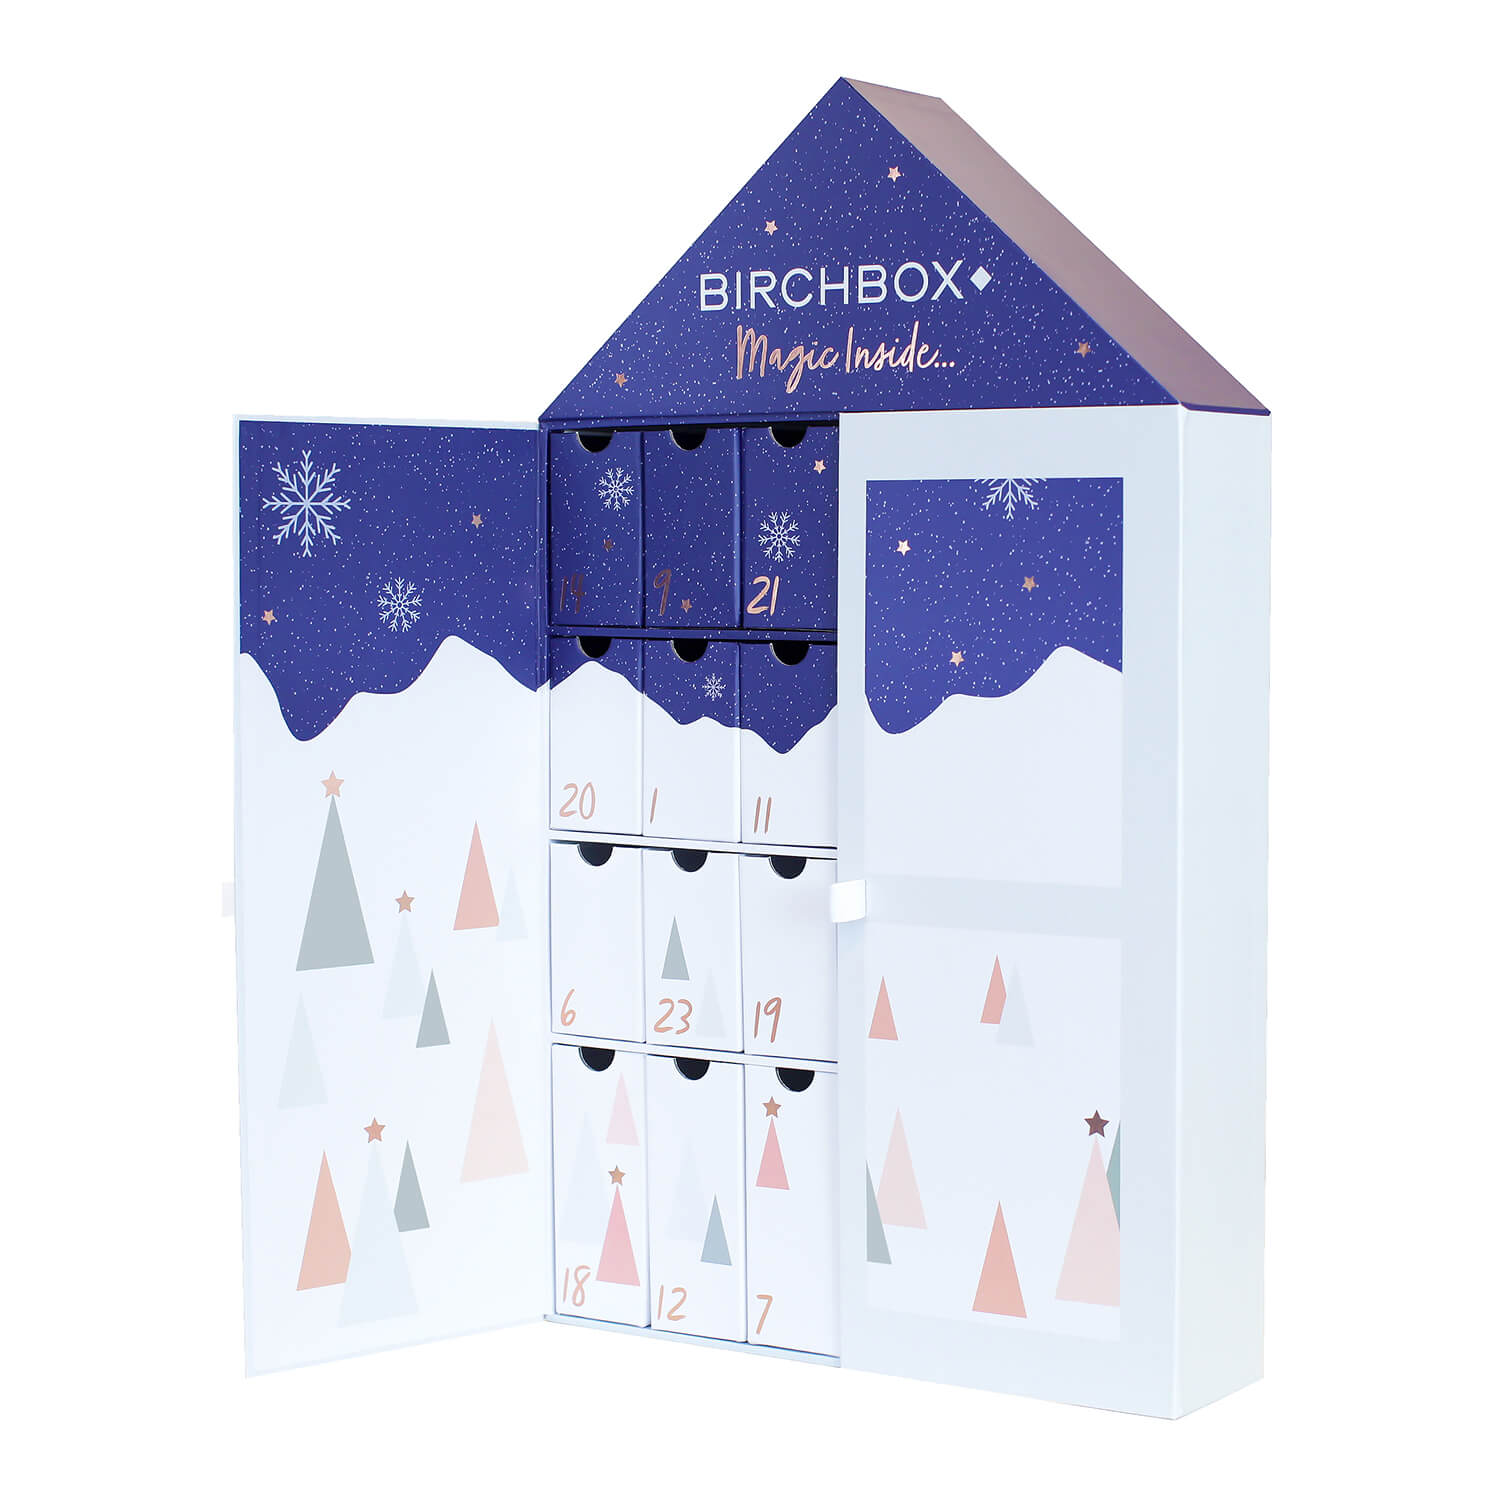 65bc098208696 It s time to countdown to Christmas with the new Birchbox Beauty Advent  Calendar. Filled with 24 beauty treats